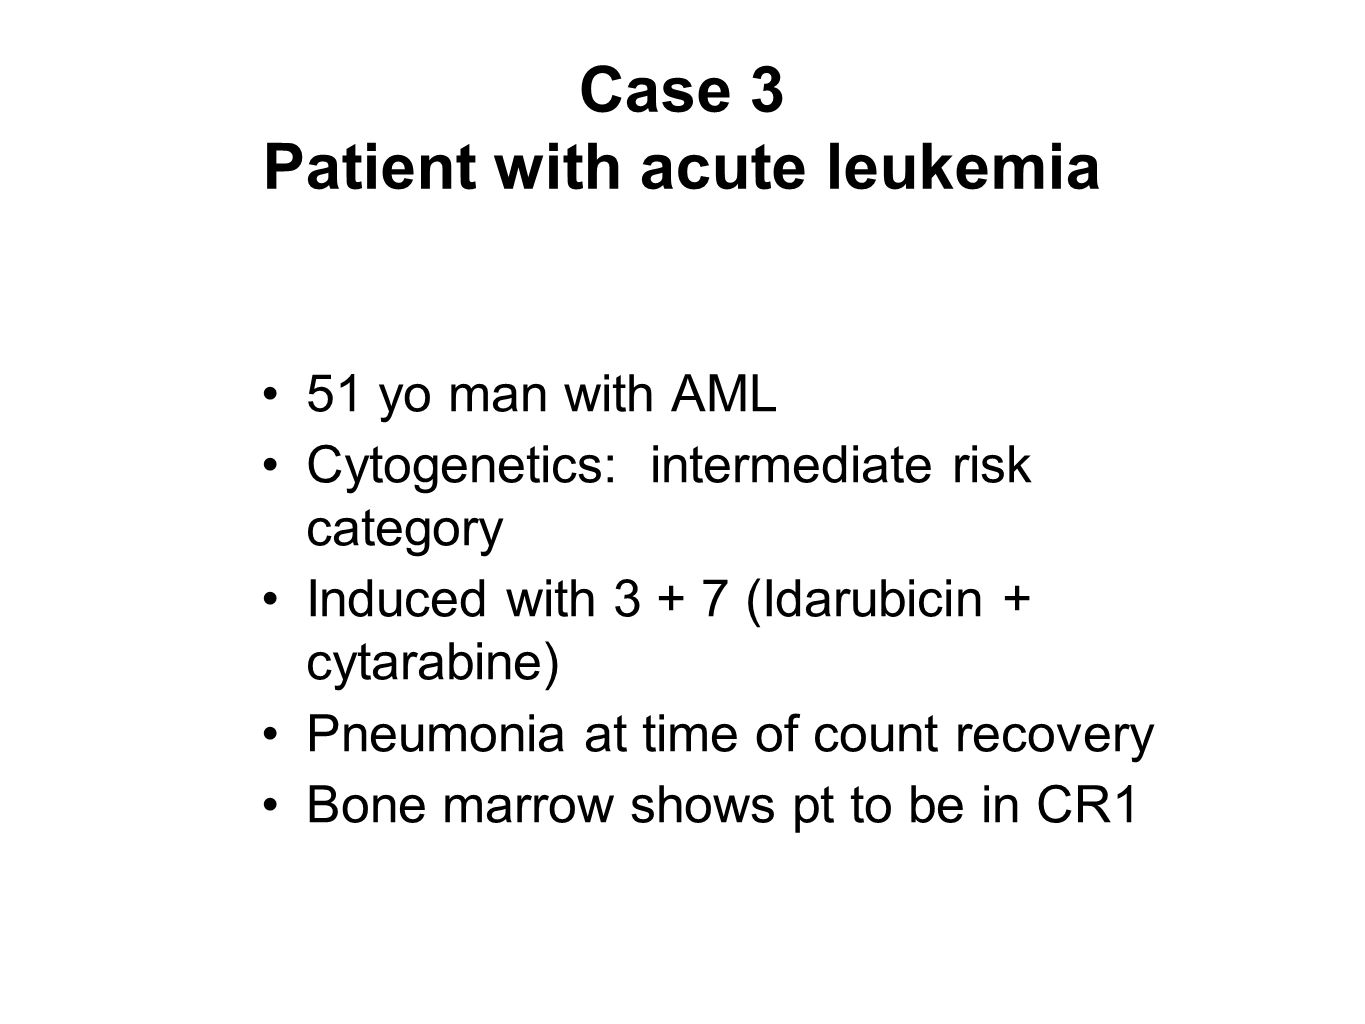 Case 3 Patient with acute leukemia